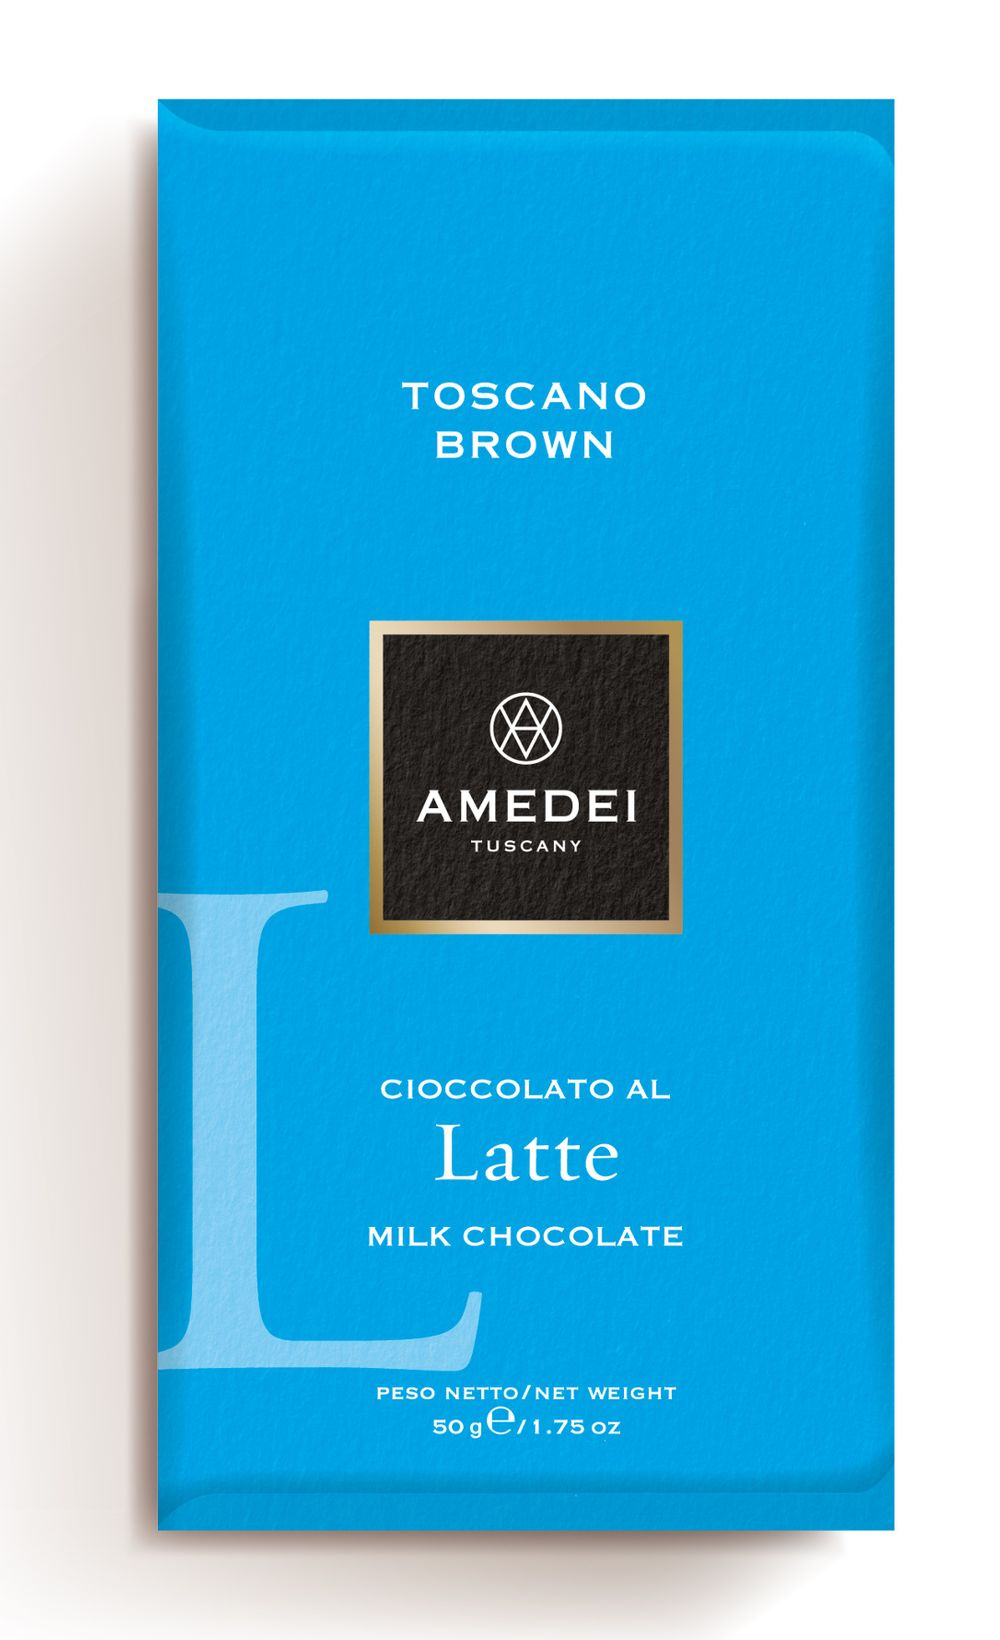 Toscano Brown Latte Milk Chocolate